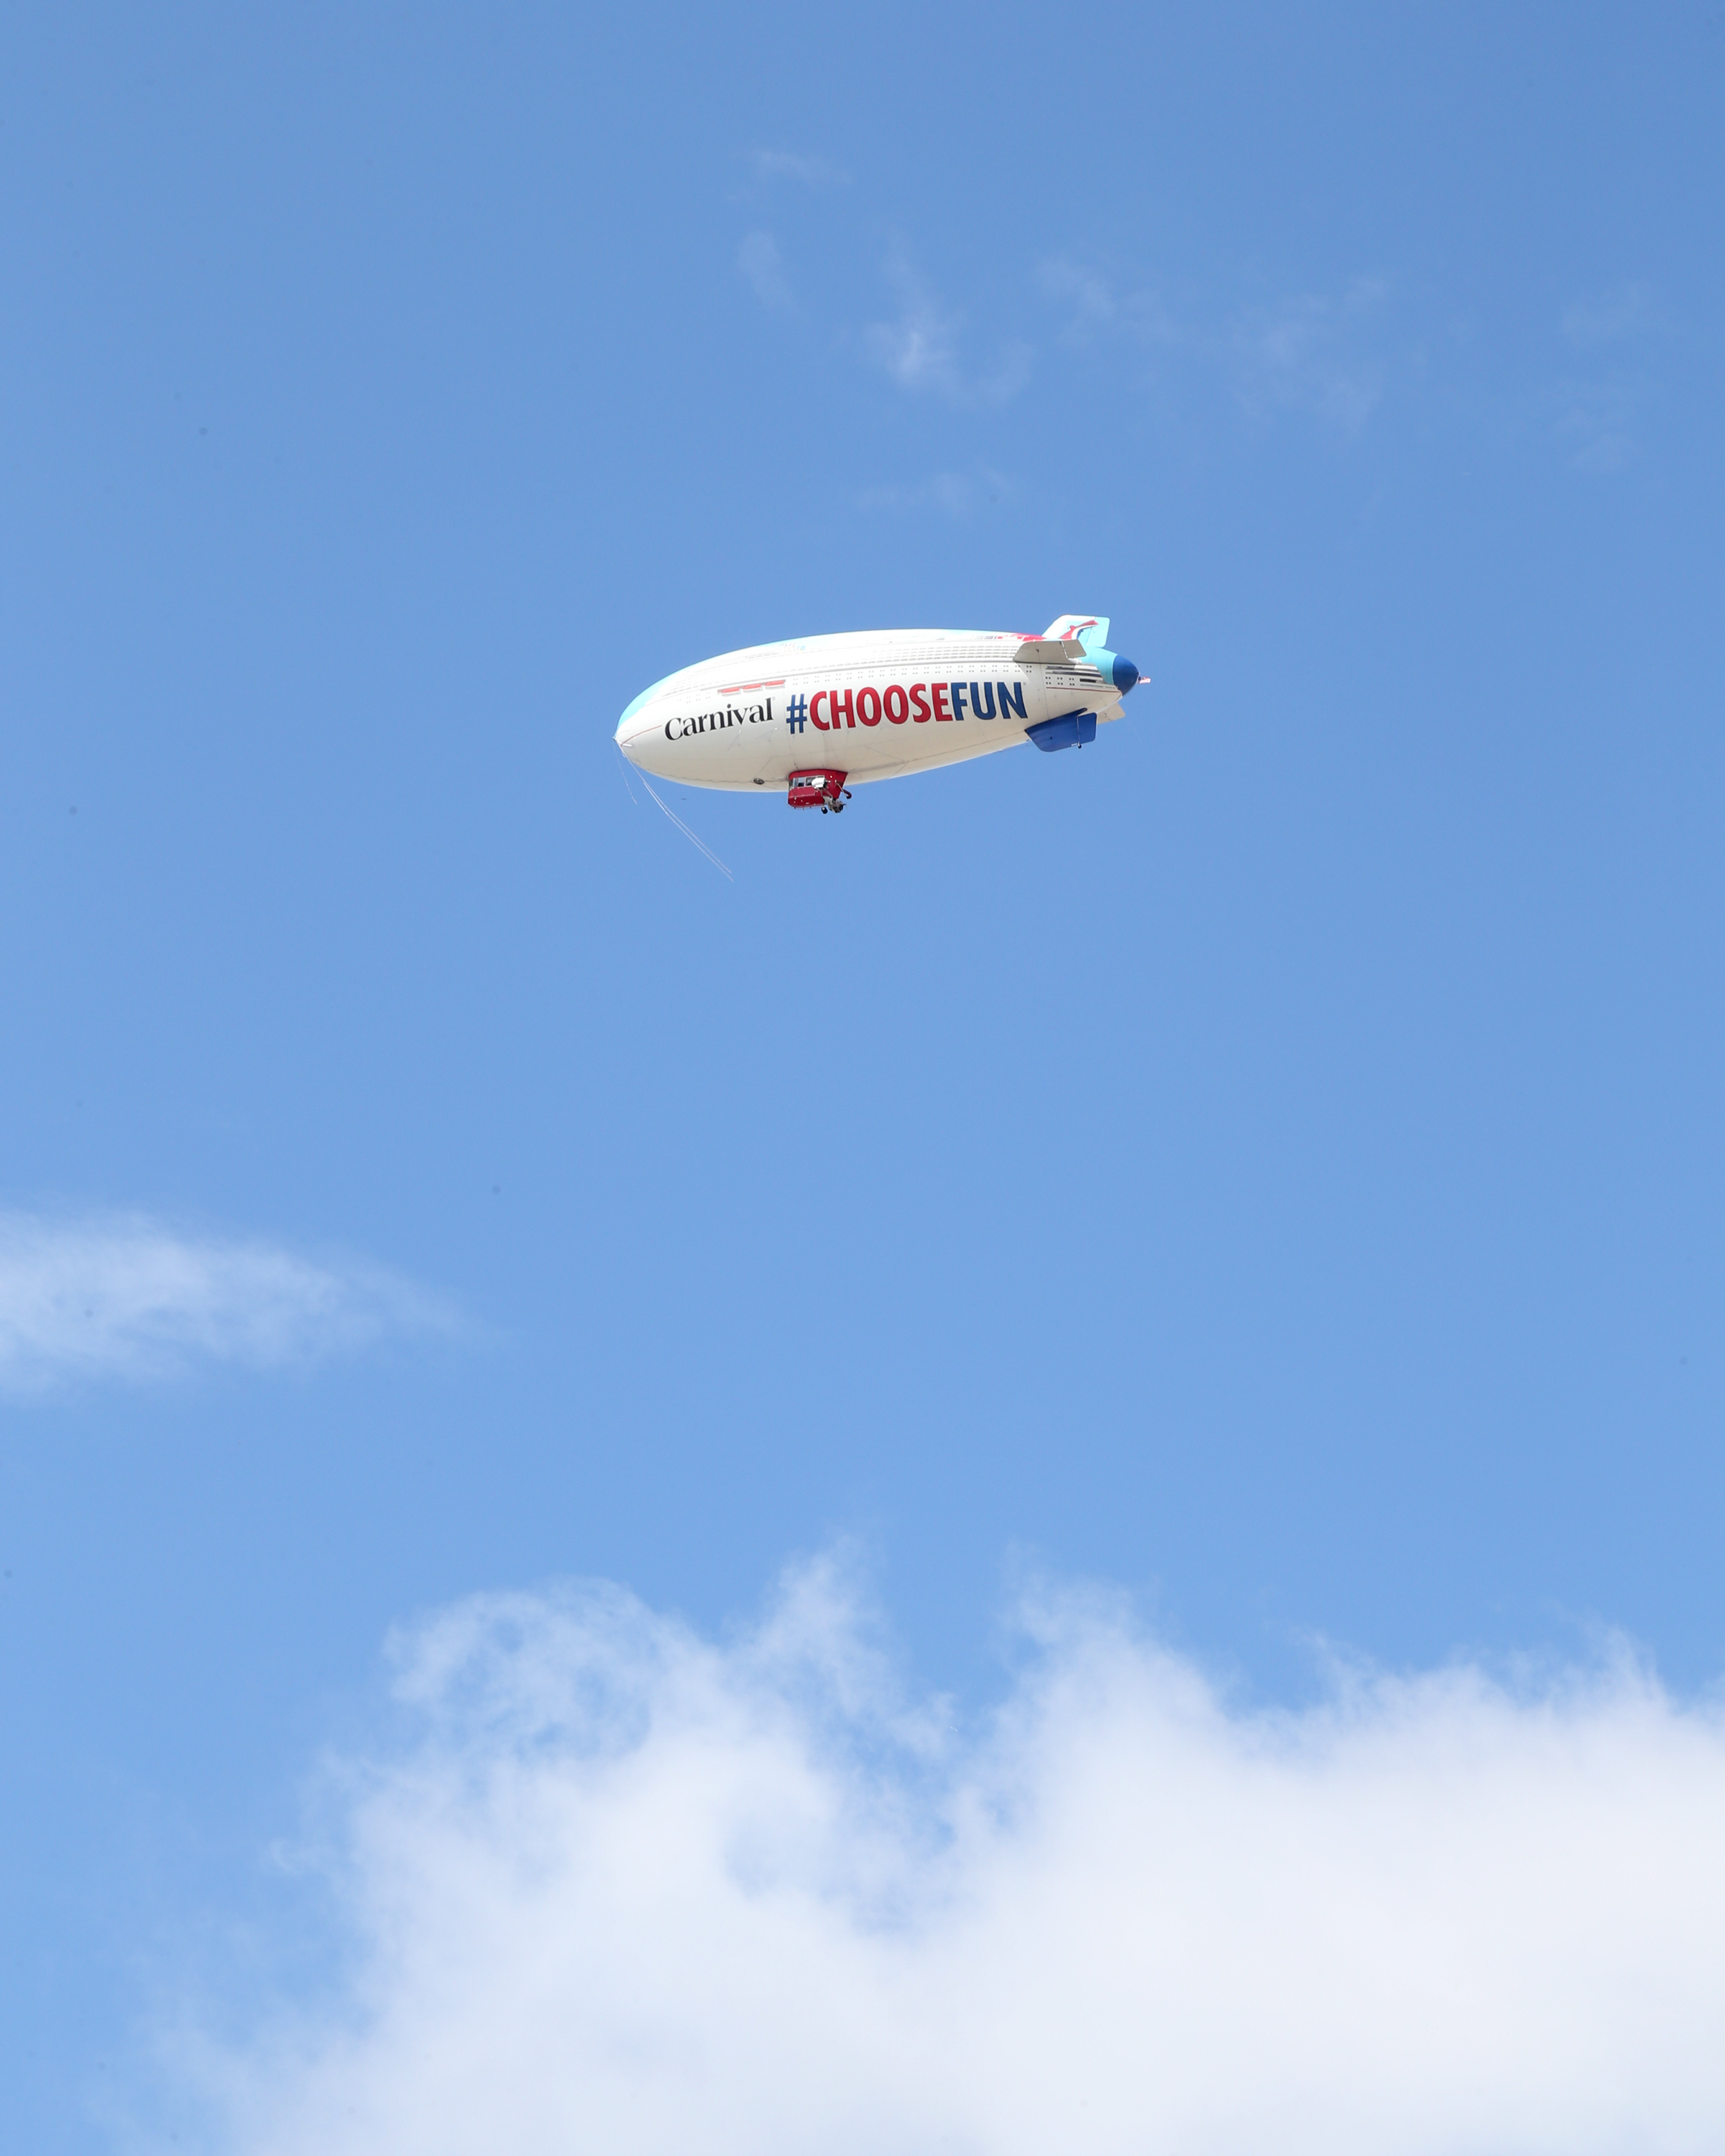 Carnival Cruise Line Takes To The Sky With Innovative 'Homeport Advantage' Campaign Featuring A Massive 128-Foot-Long Carnival Airship Flying Over The Southeast